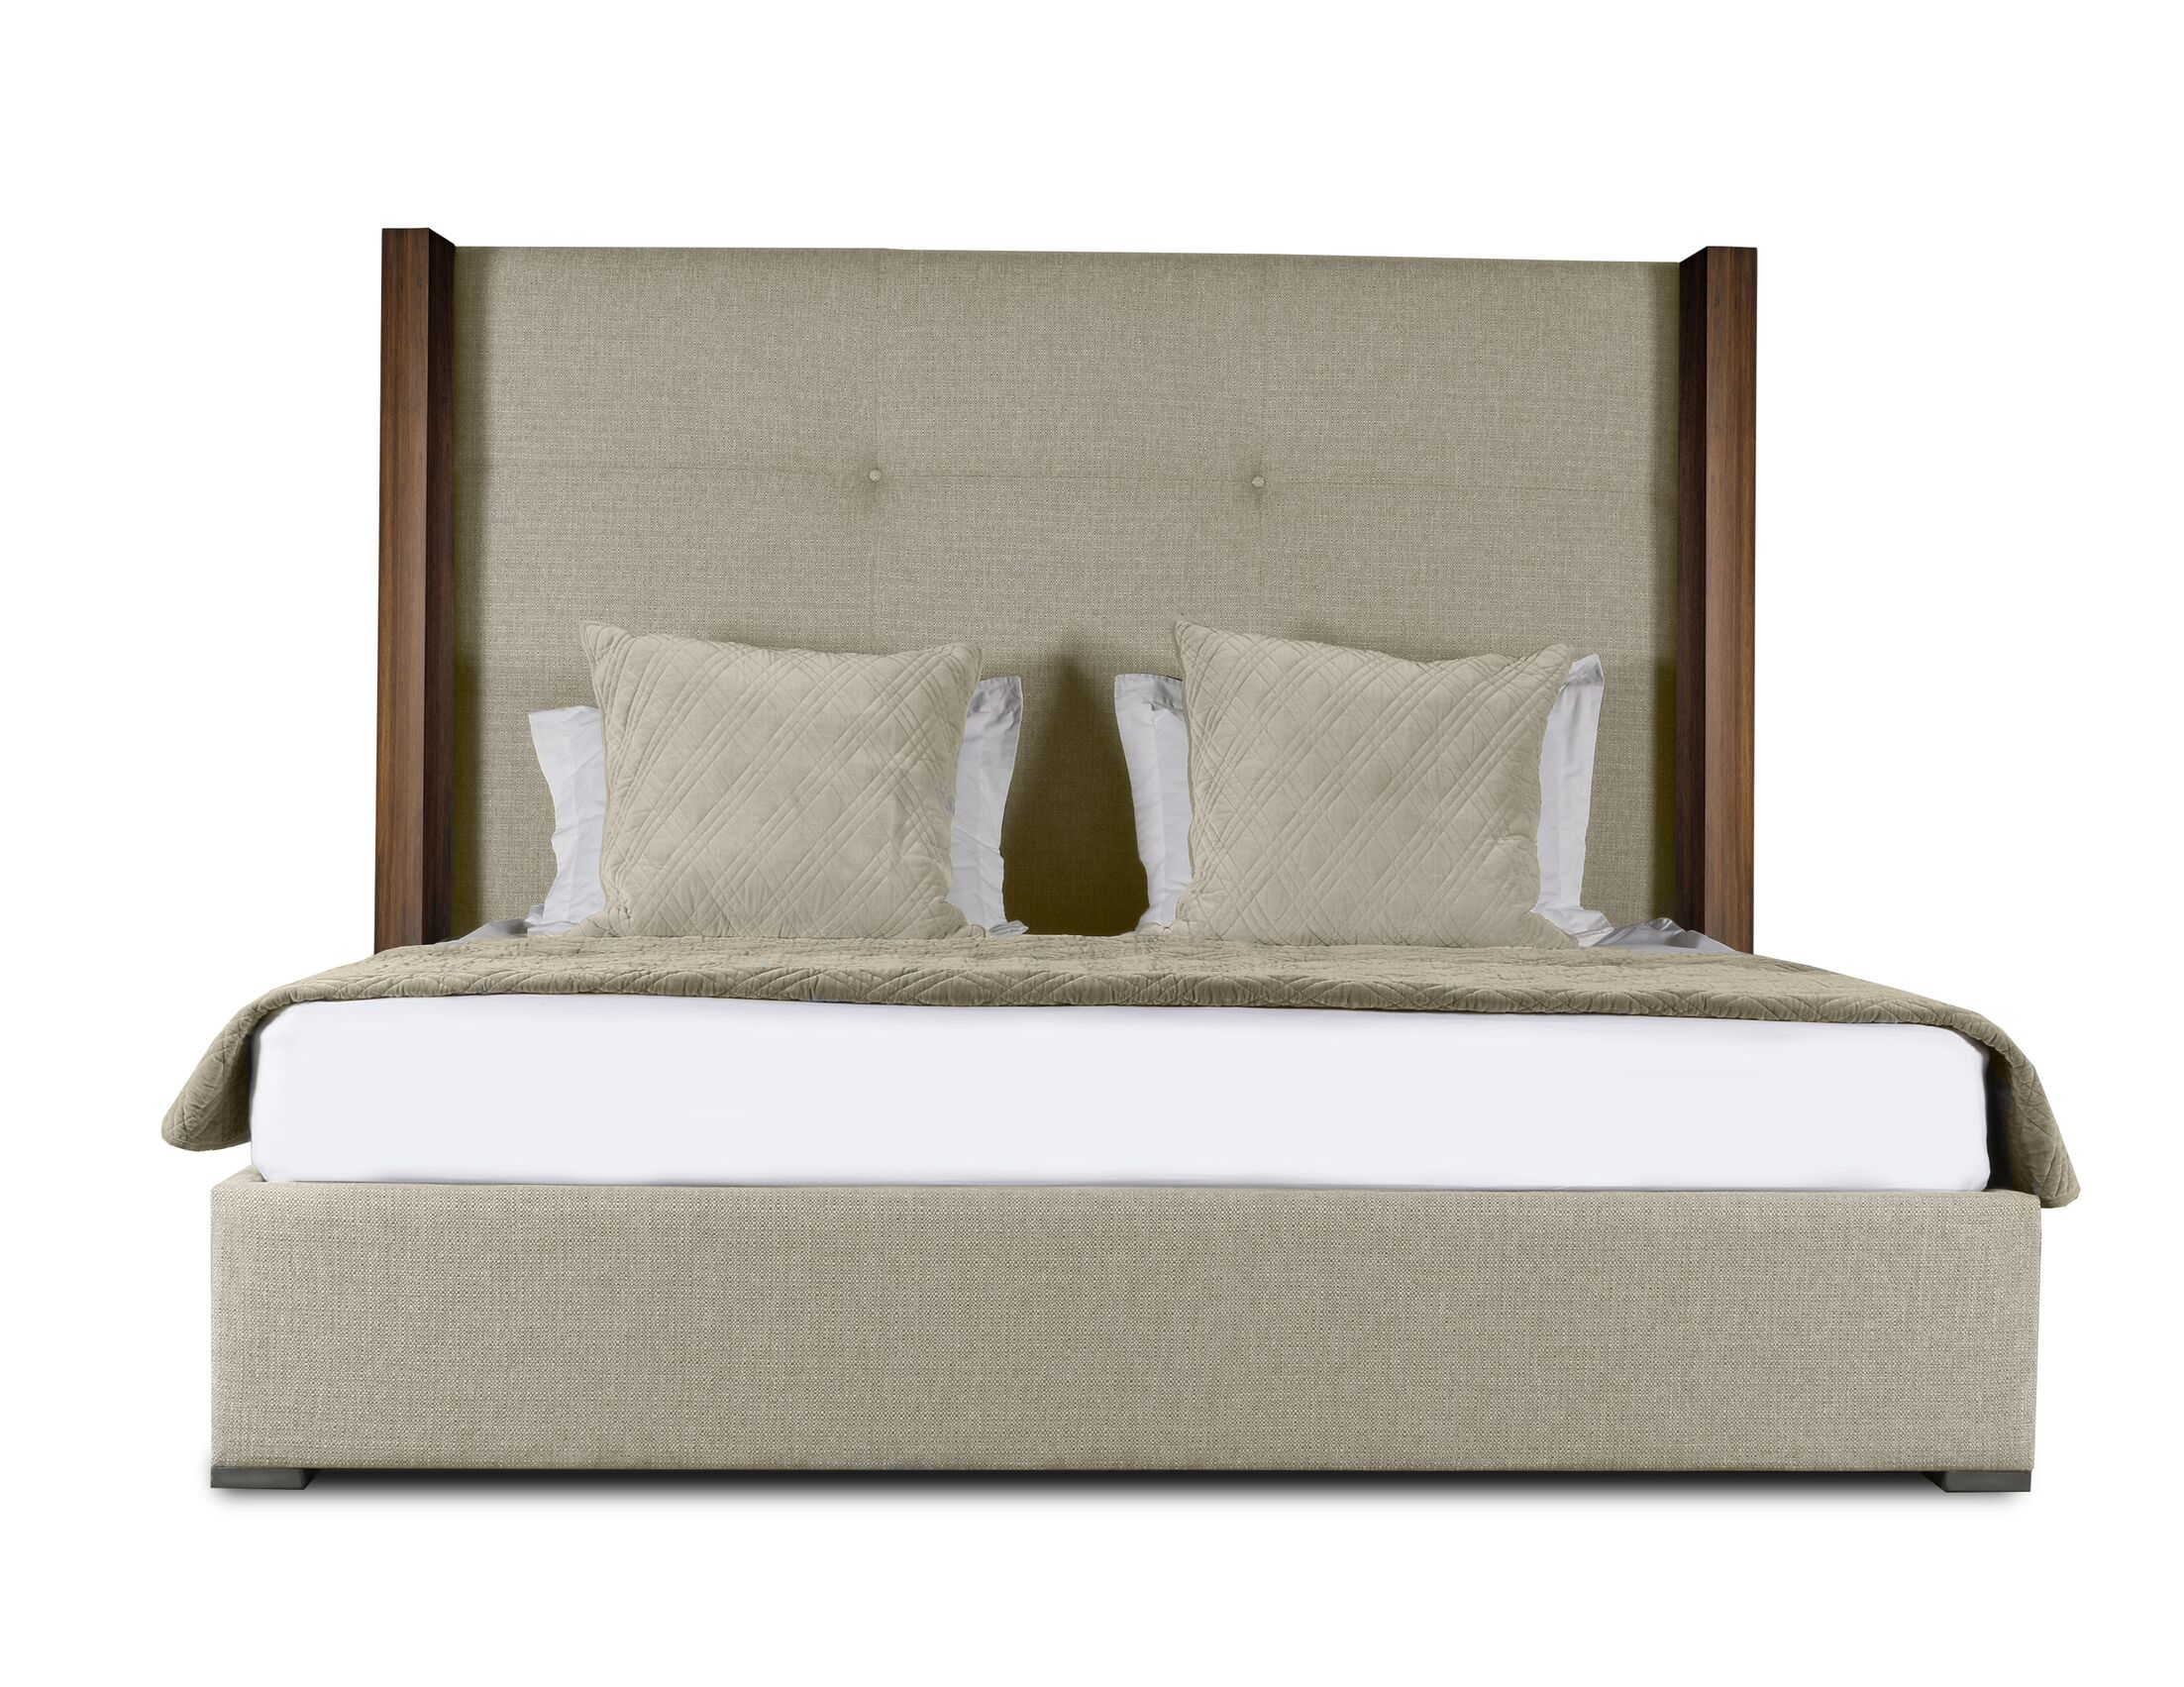 Harborcreek Upholstered Platform Bed Size: High Height Queen, Color: Sand